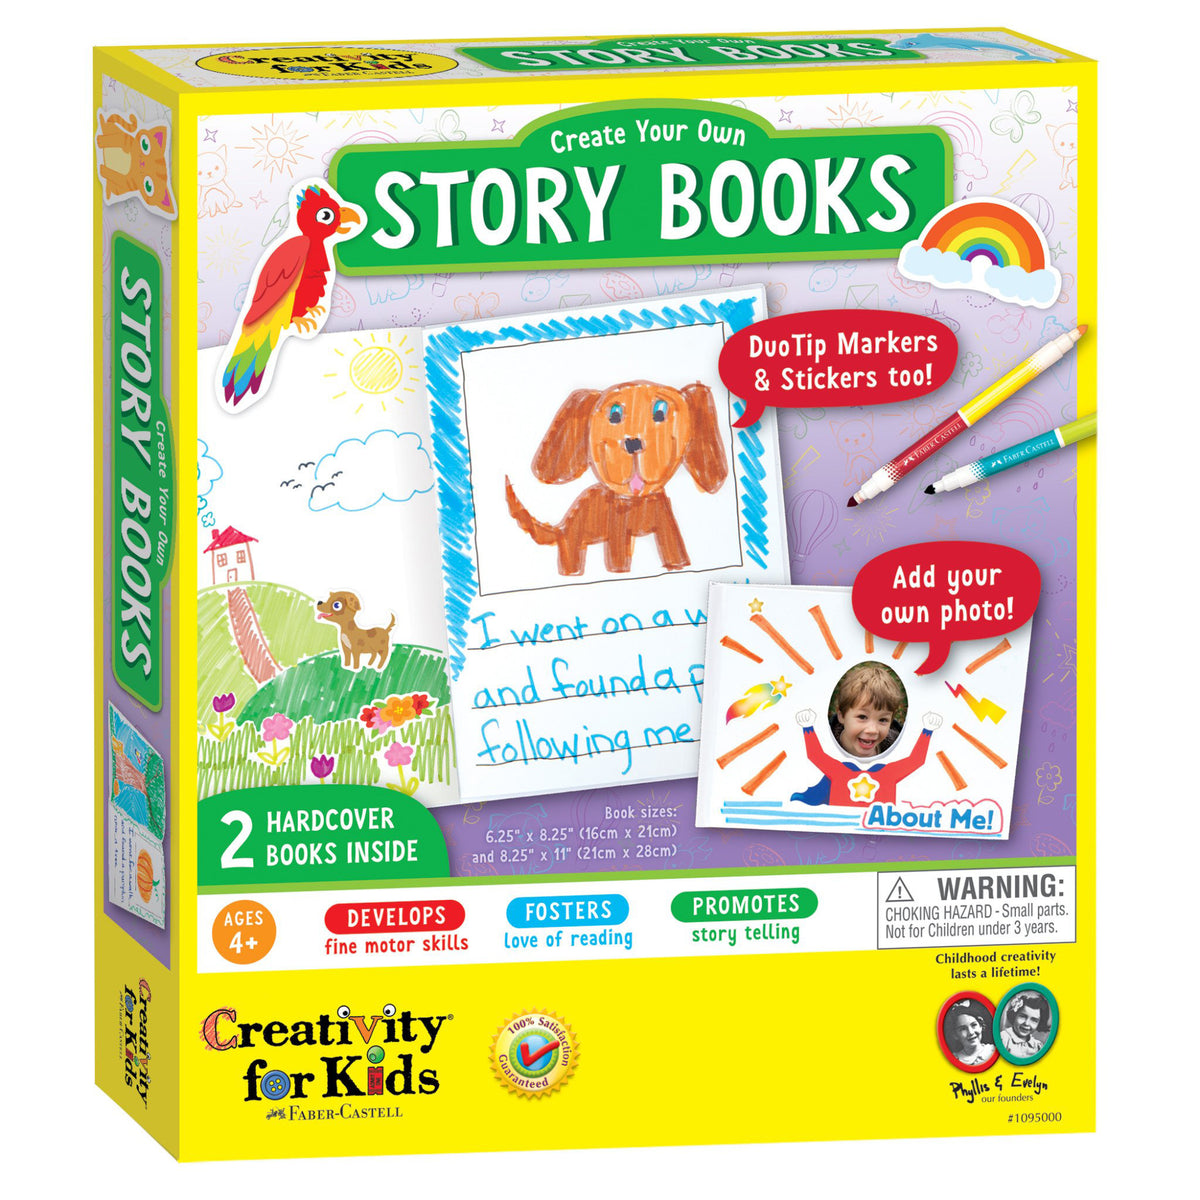 Create Your Own Storybooks Kit